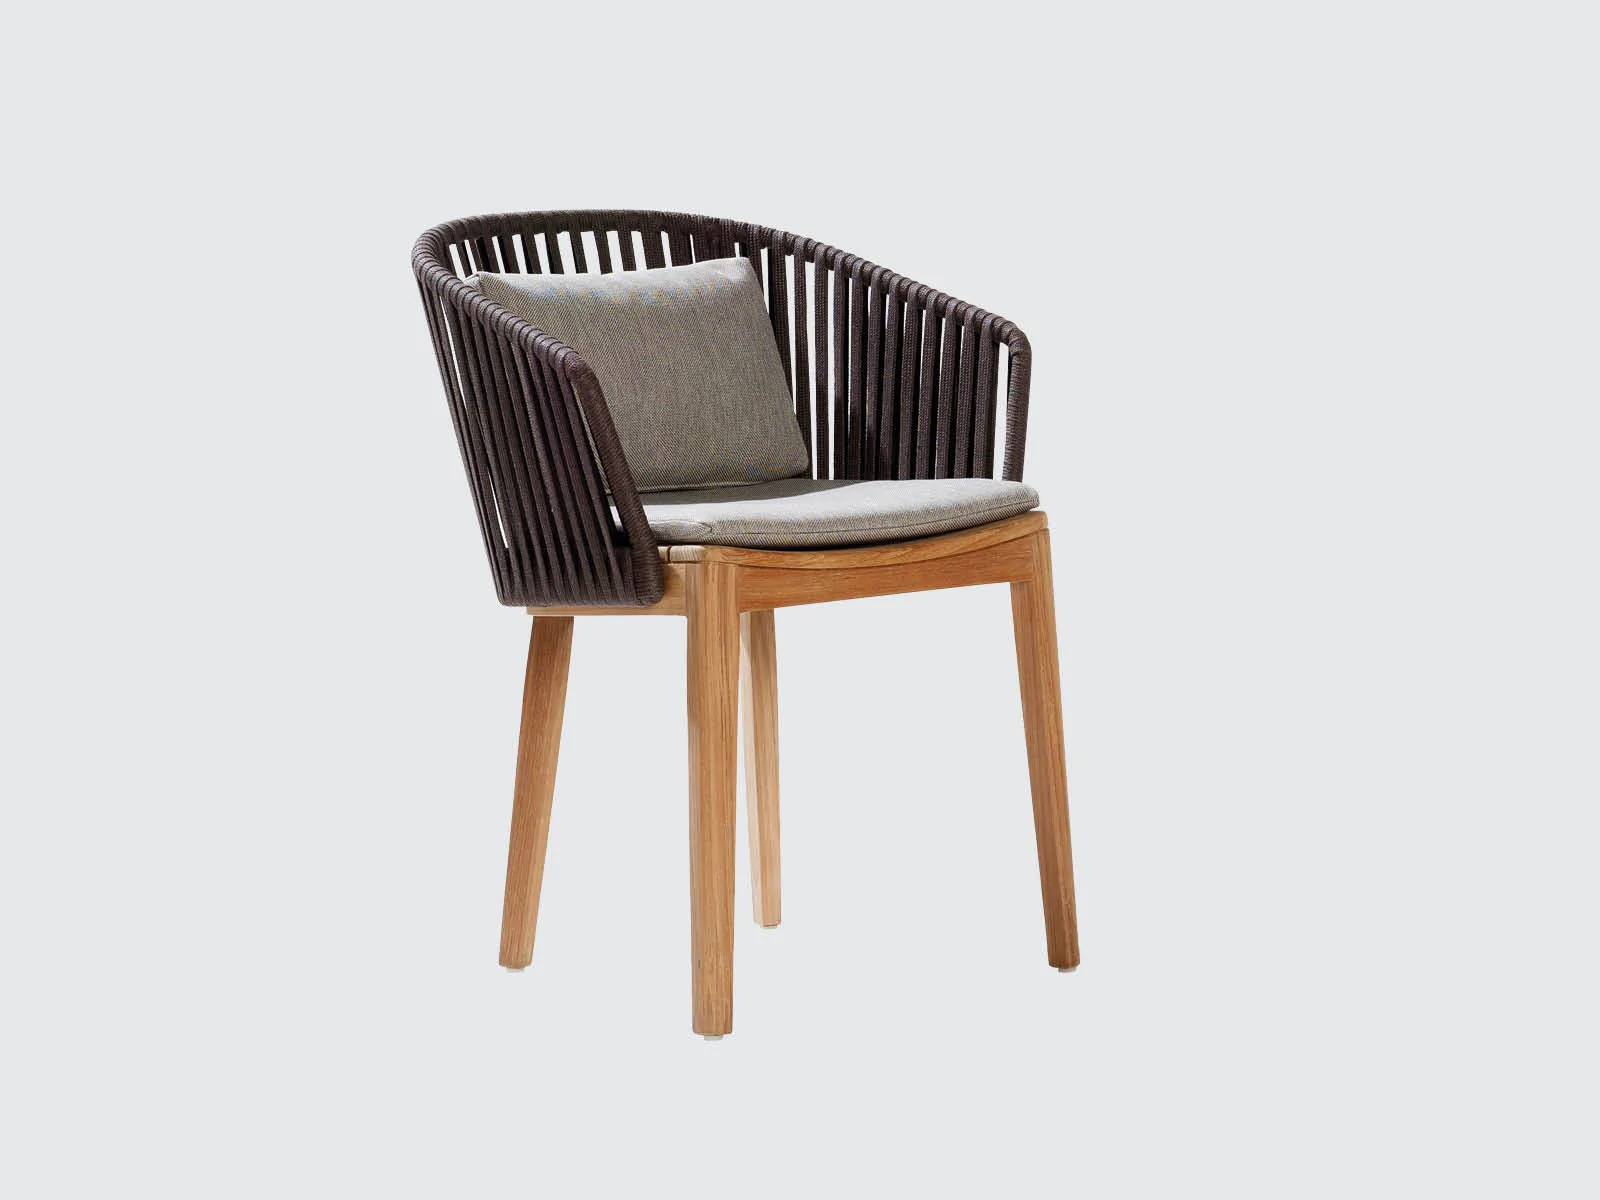 casual chairs nz desk chair wood mood by tribu dawson and co auckland